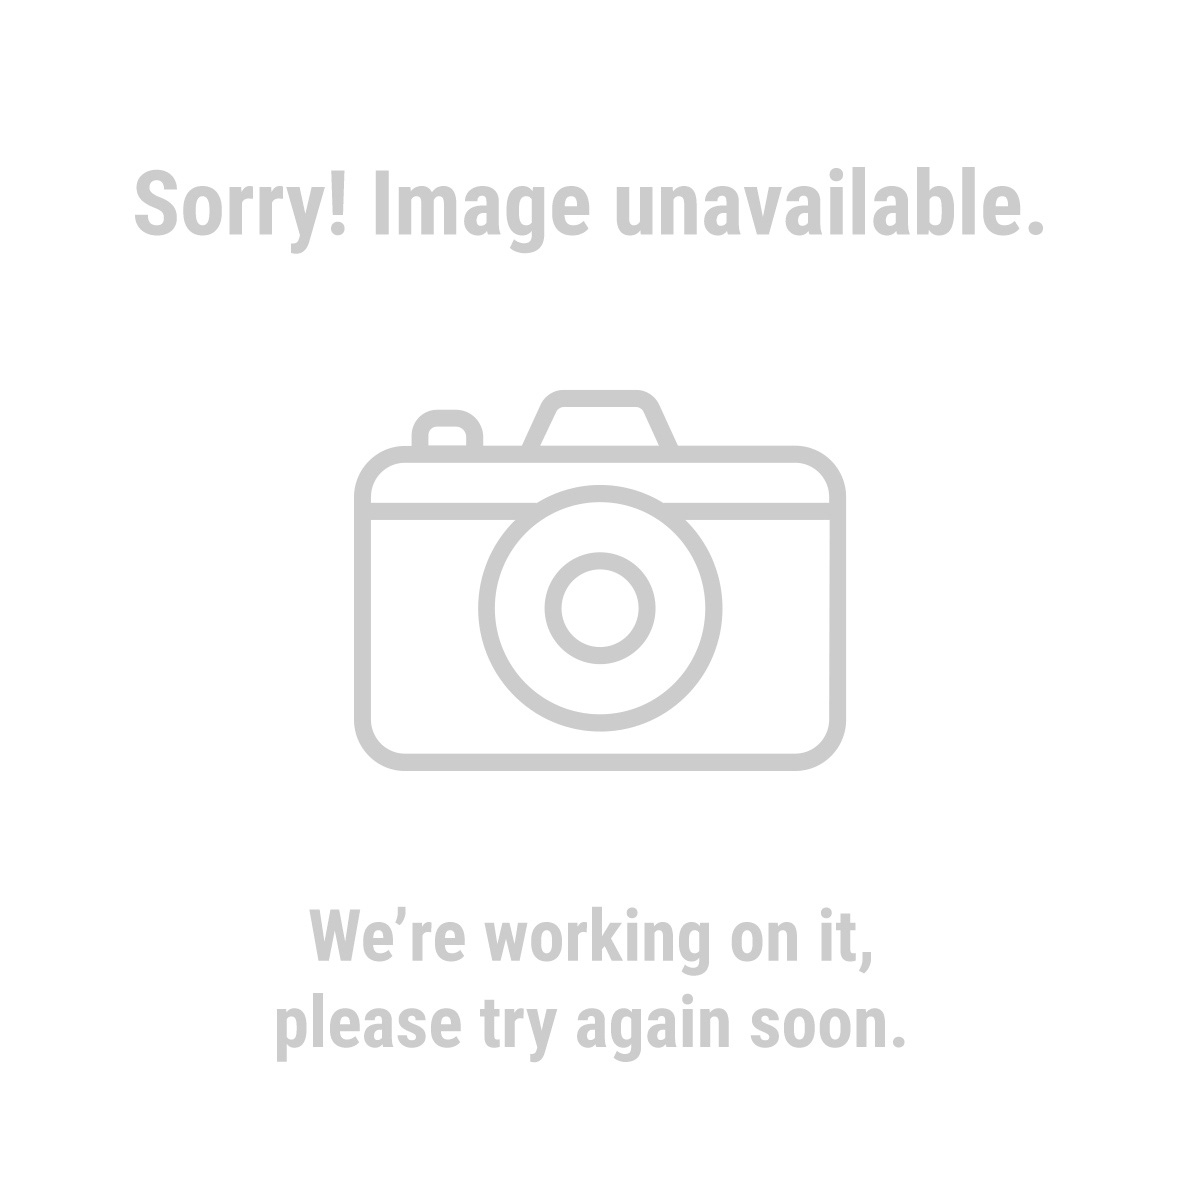 Haul-Master® 34708 2 Ton Lifting Sling